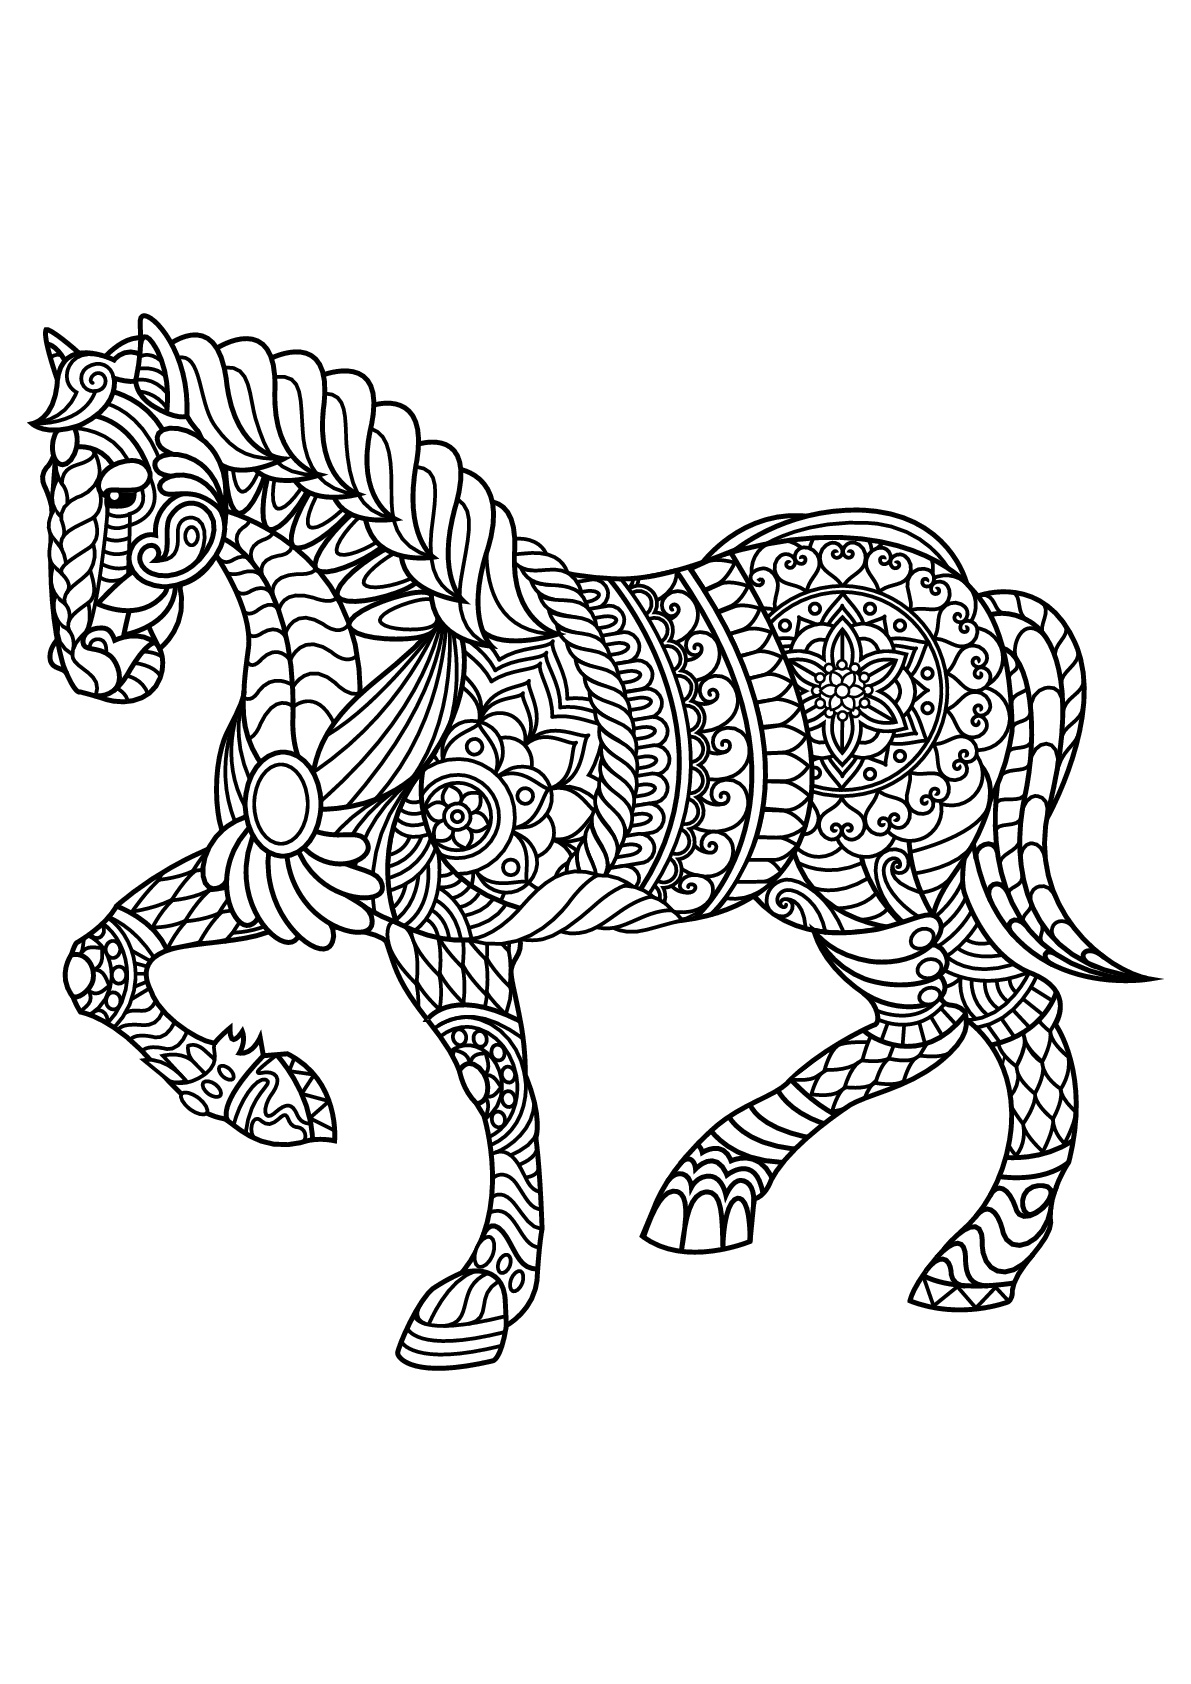 Horses to download for free - Horses Kids Coloring Pages